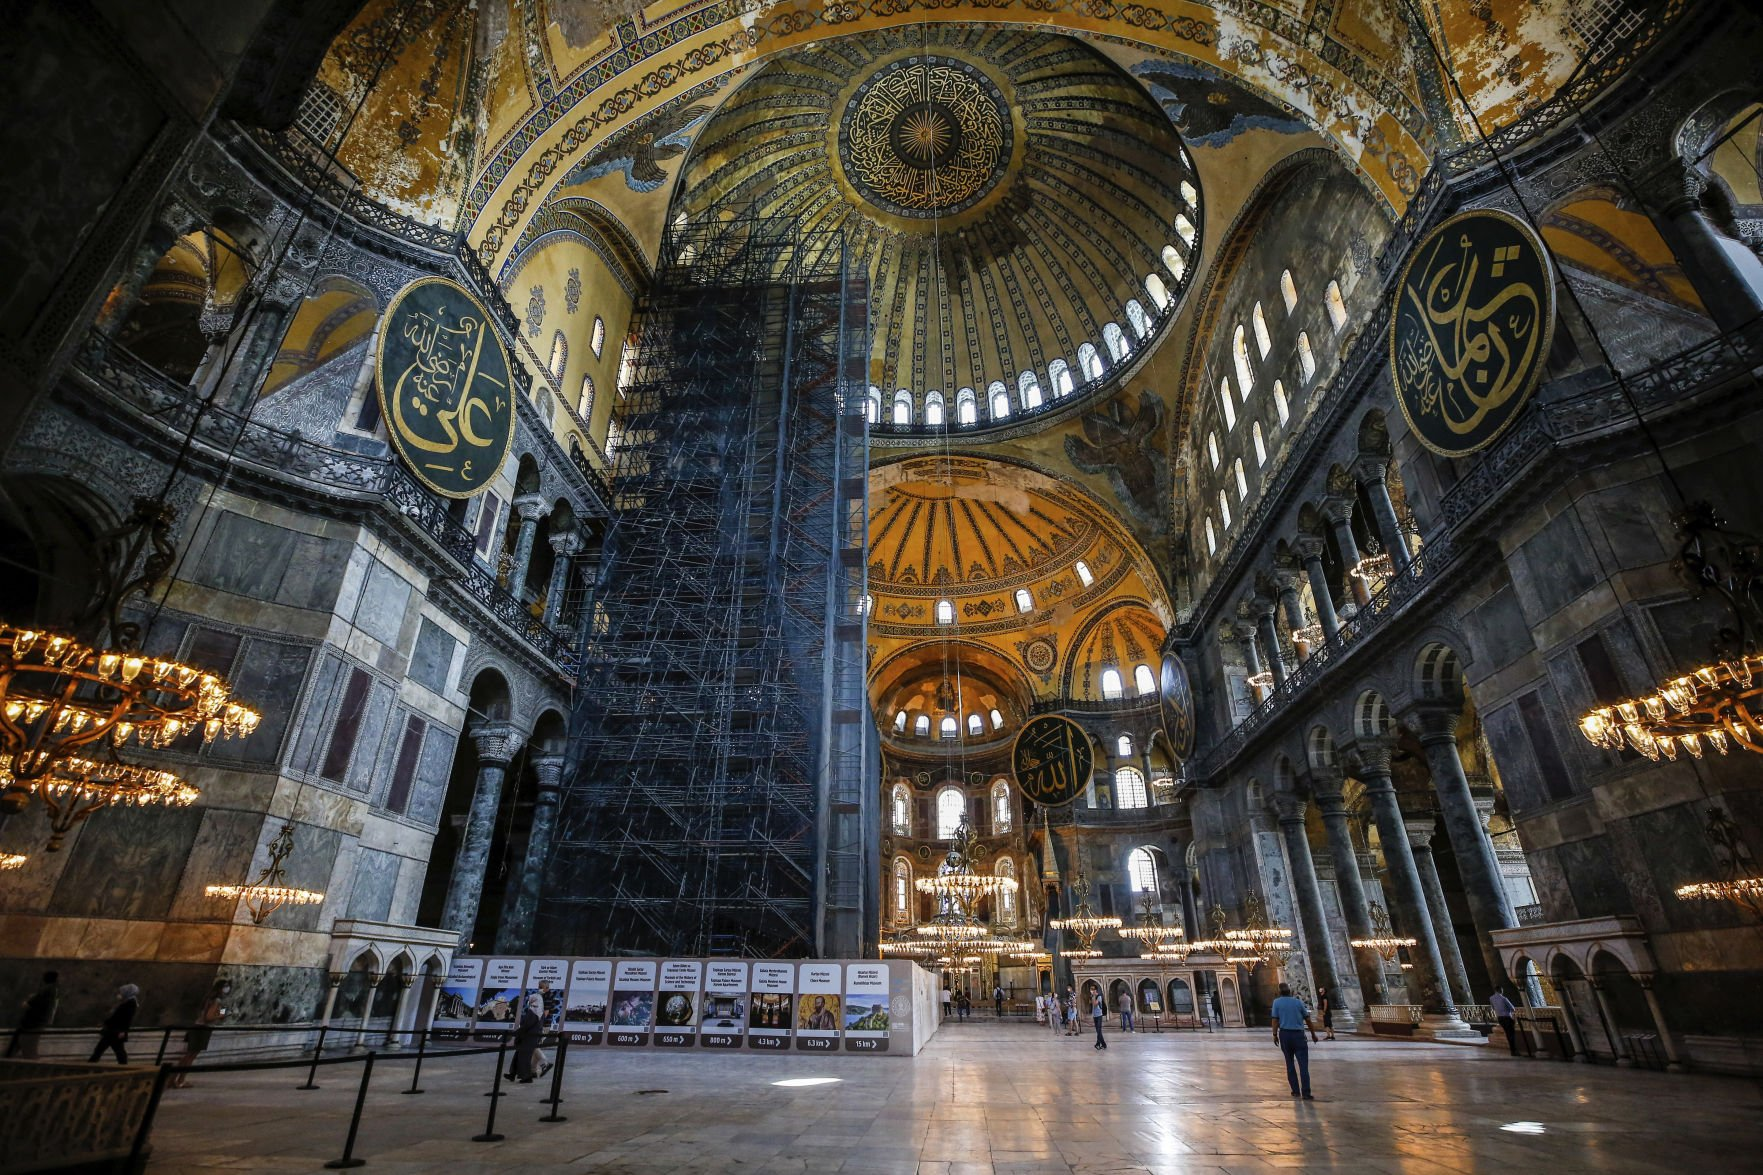 The Turkish judiciary opens the door to convert Hagia Sophia into a mosque